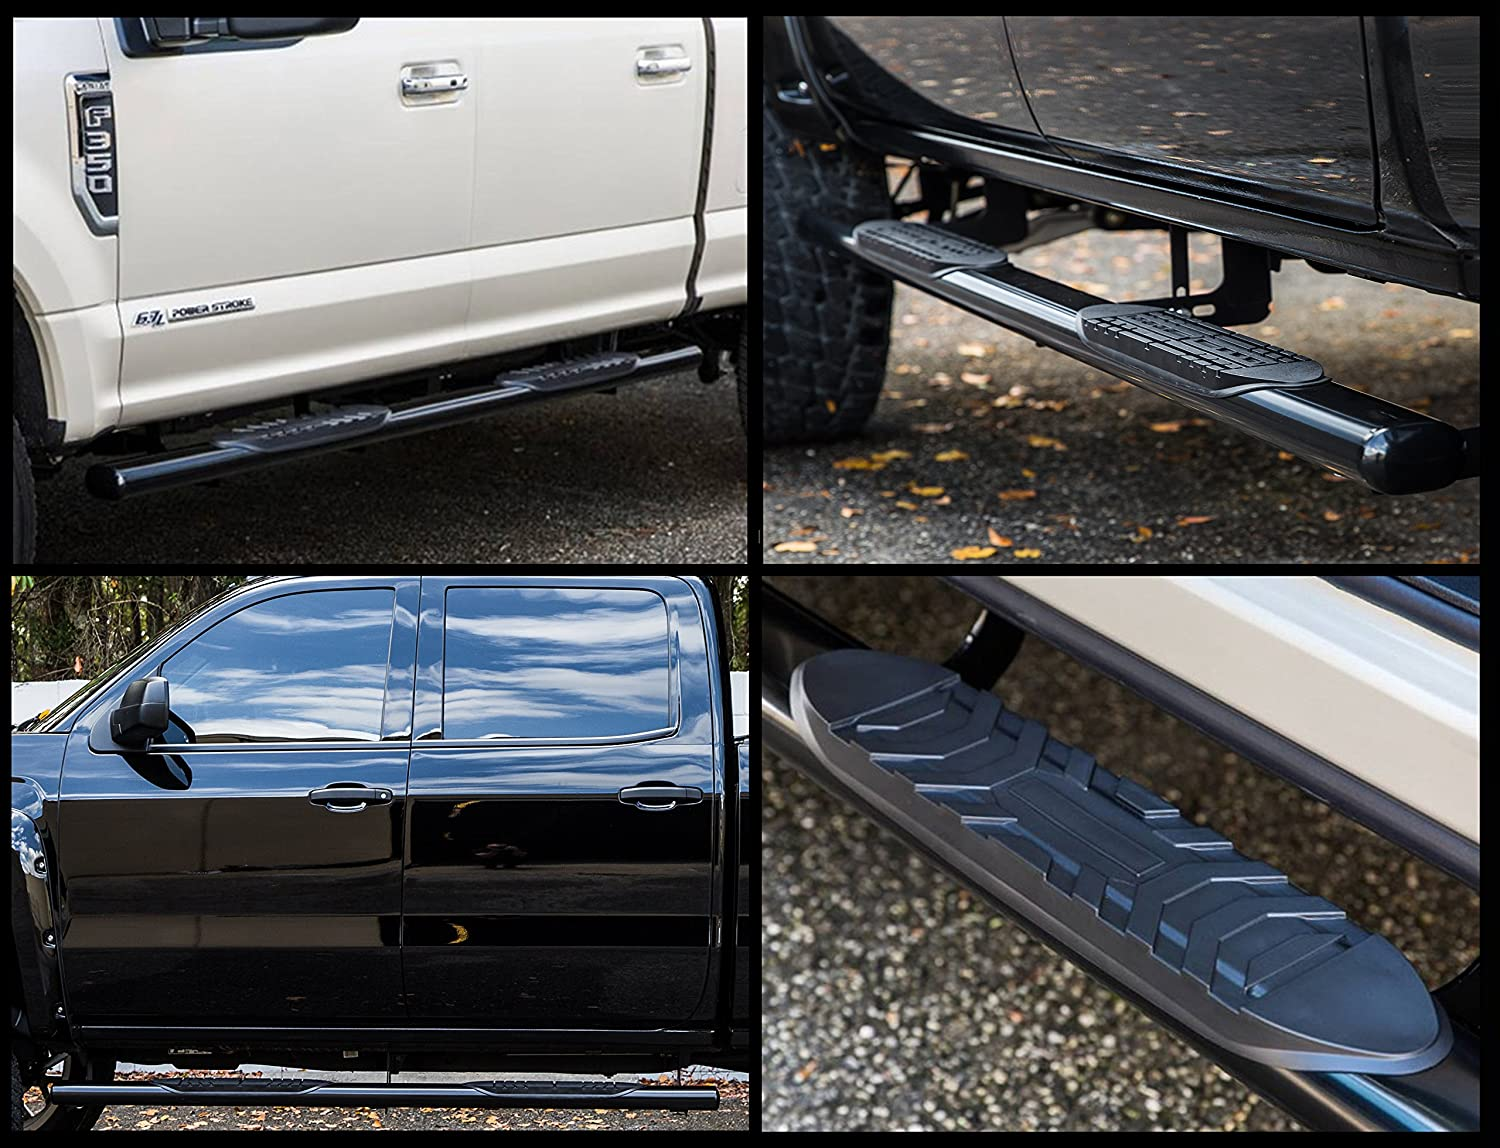 fits 2010-2018 Dodge Ram 2500 3500 Crew Cab Only Nerf Bars Truck Side Steps 420389 Ionic Pro Series 4 Black